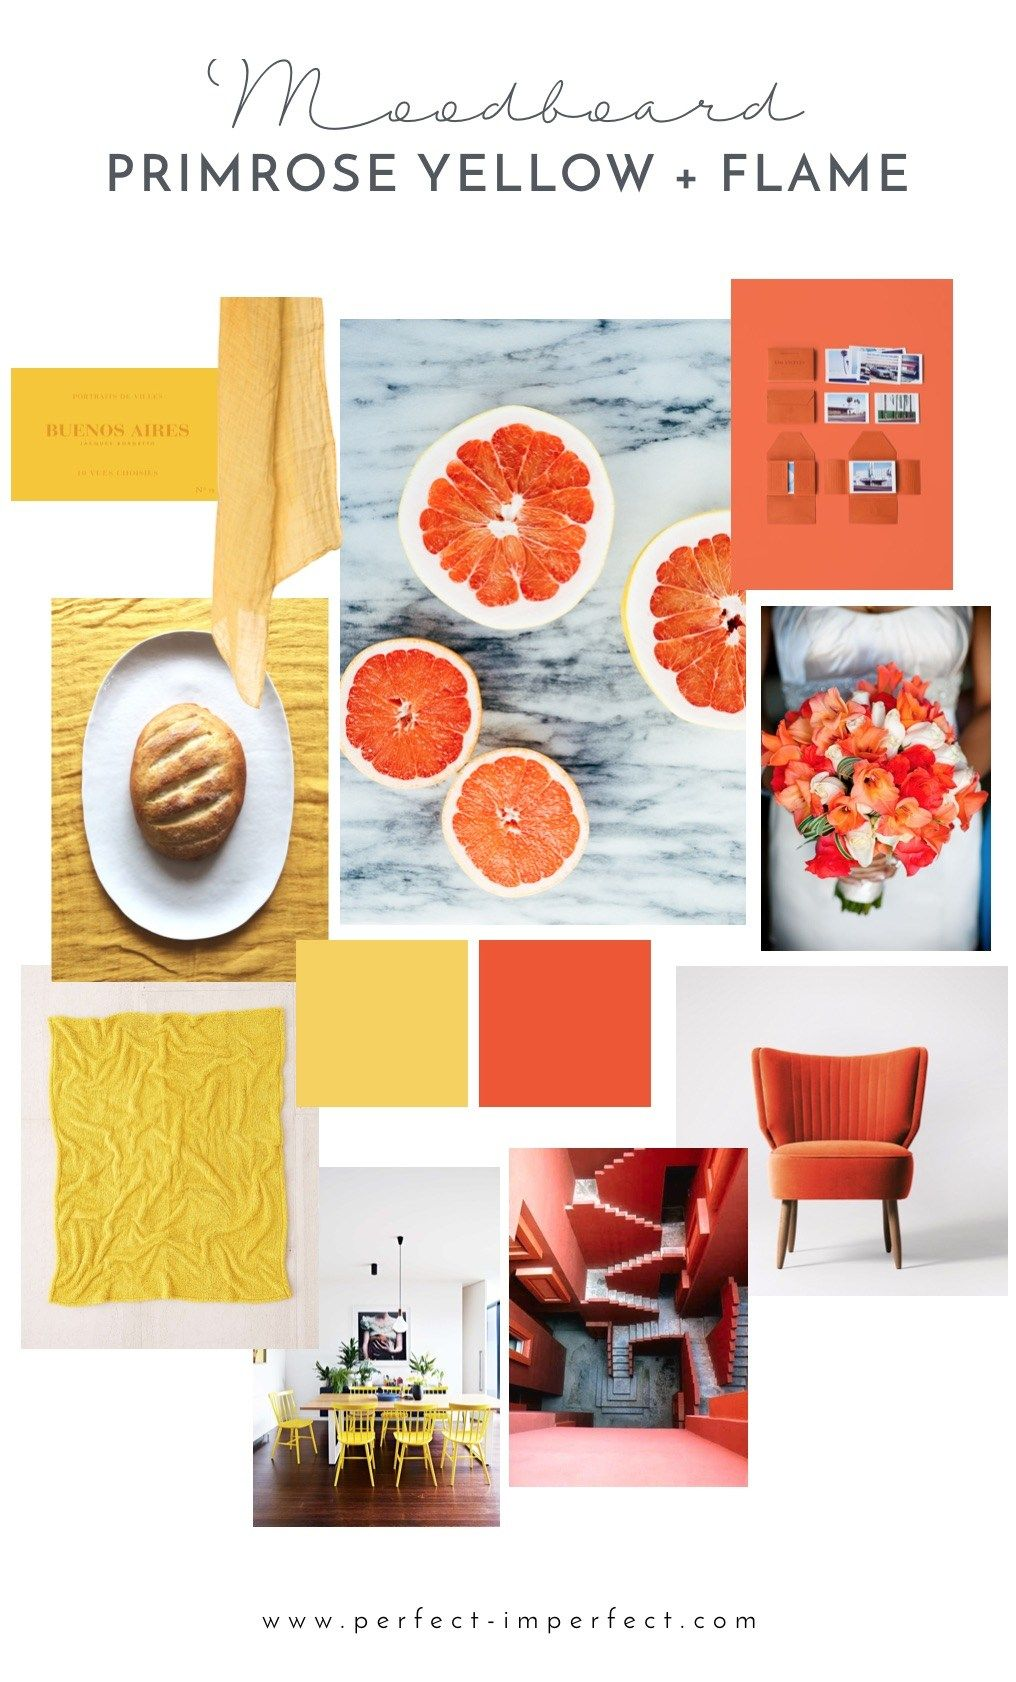 Colours Mood mood board with pantone colors: primrose yellow and flame